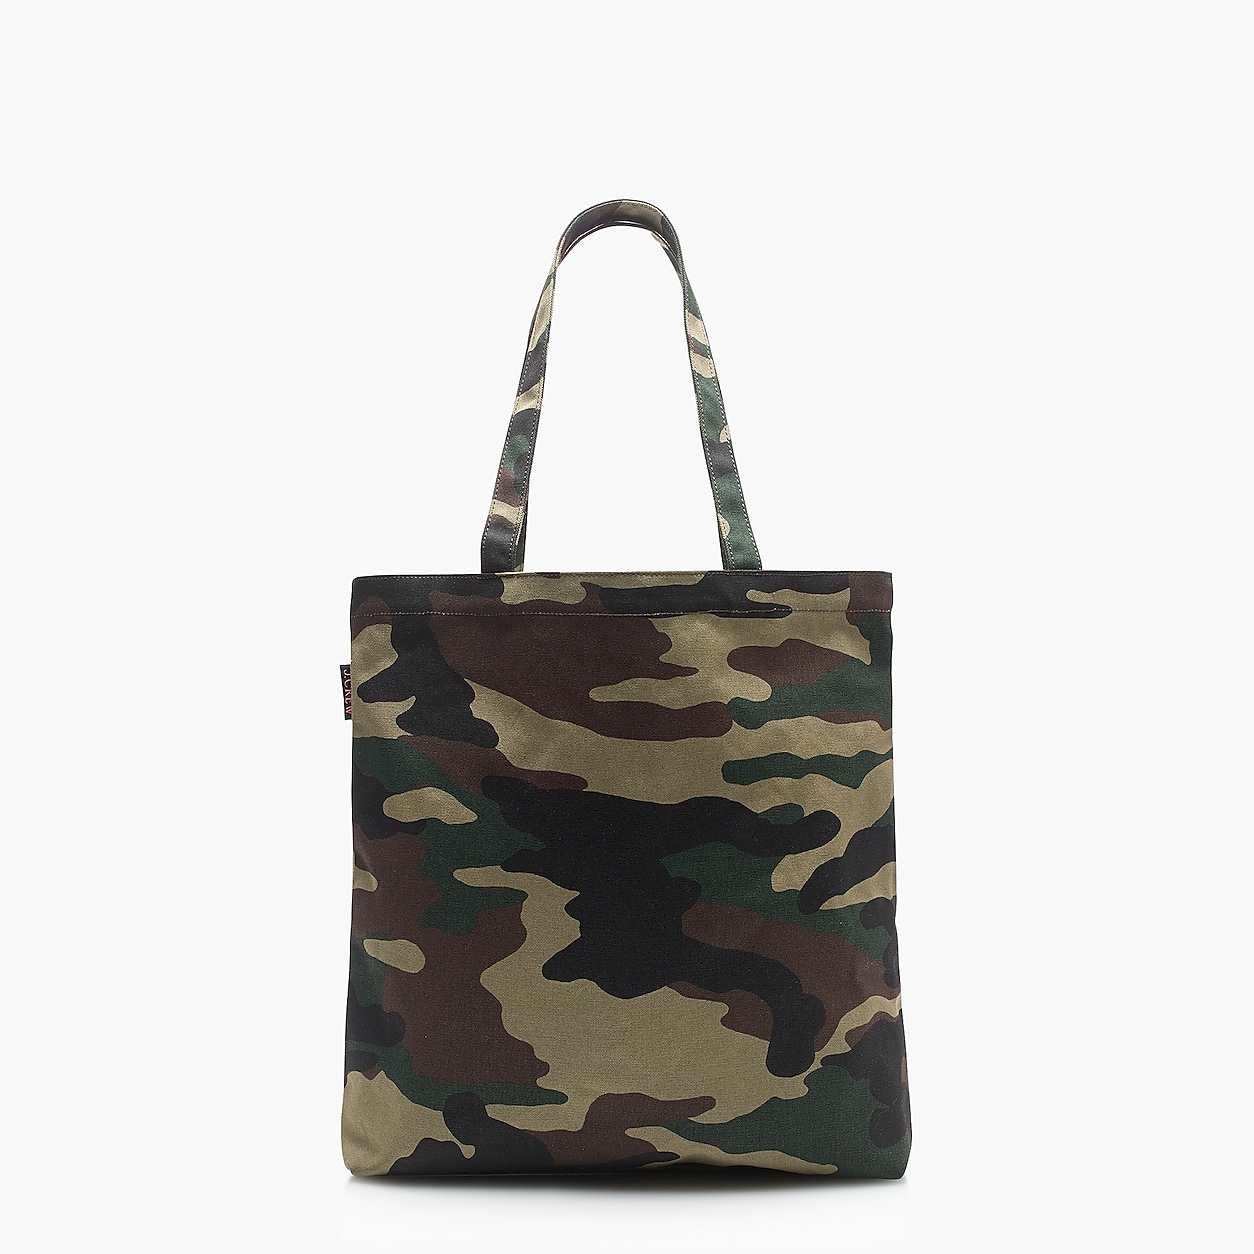 Reusable Everyday Tote Bag In Camo